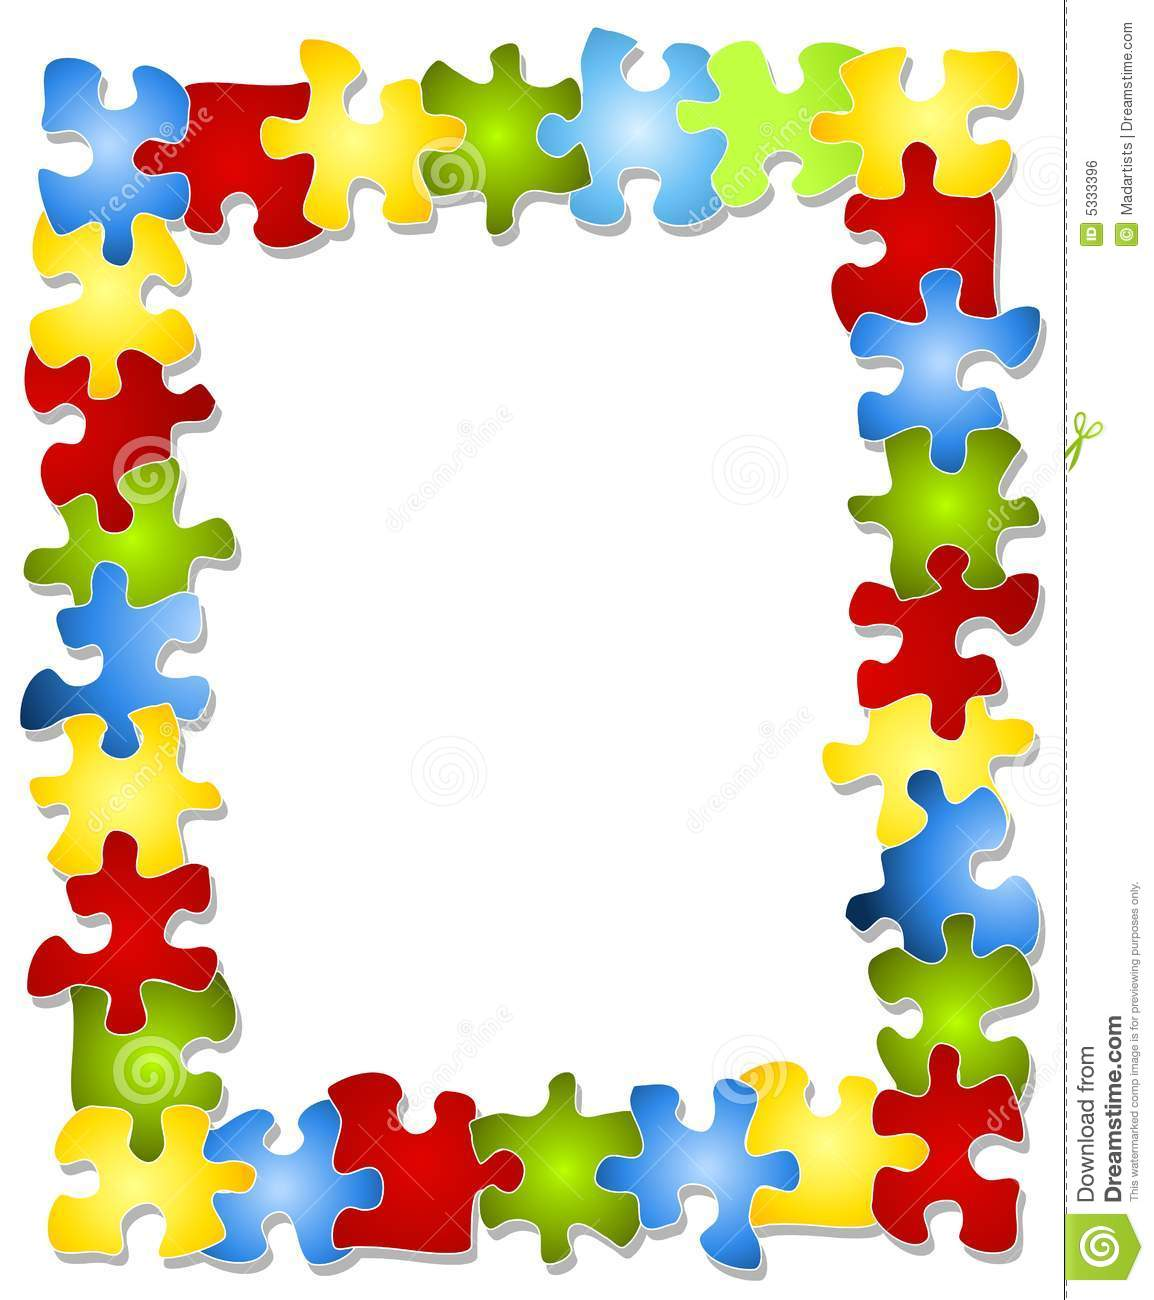 2646 Puzzle free clipart.